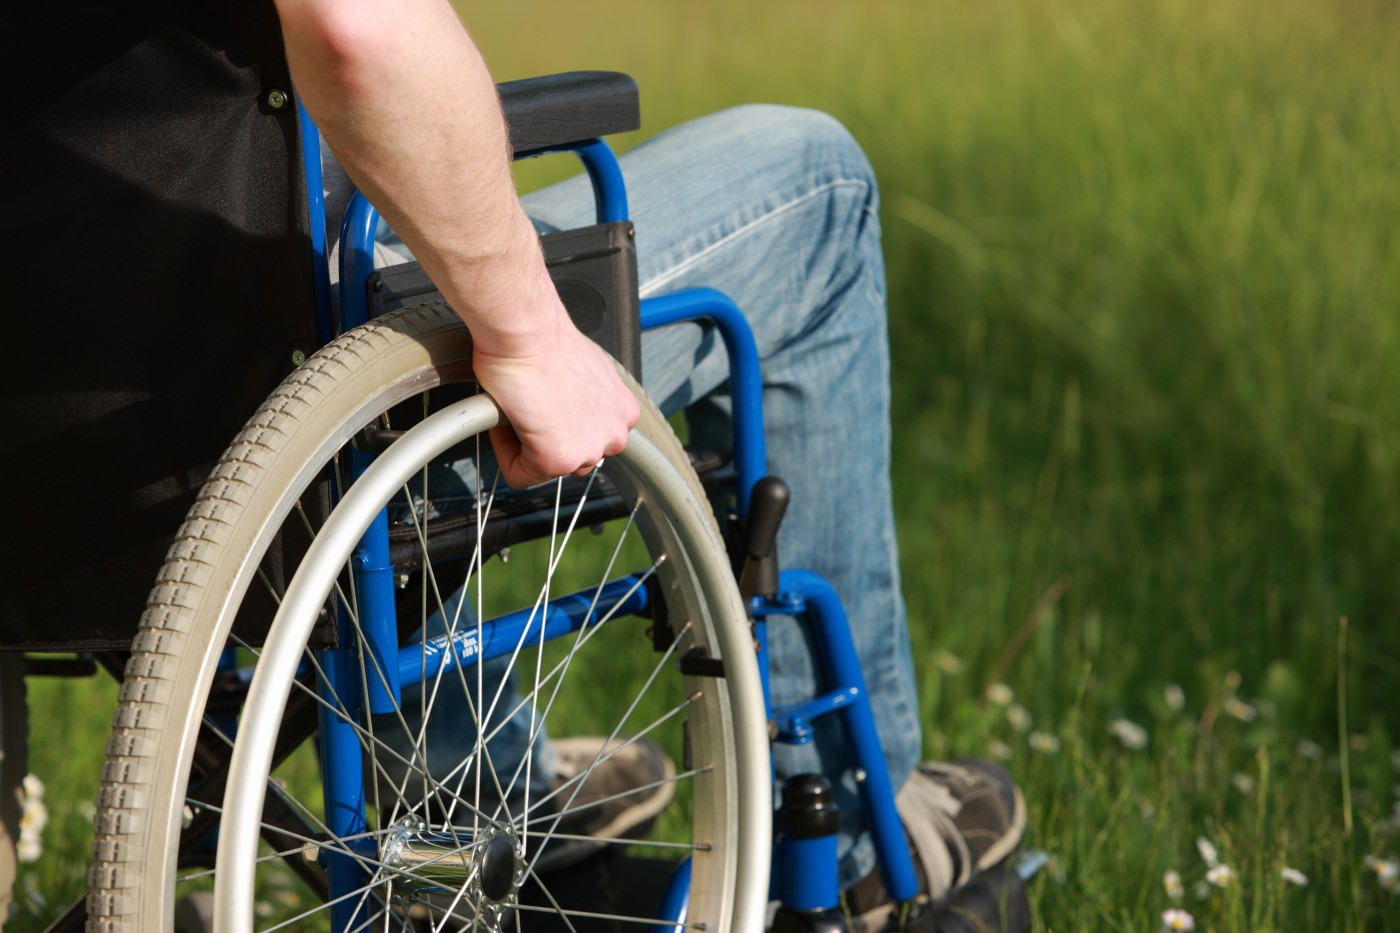 Worsening Physical Impairments Affect Quality of Life in FA, Study Shows